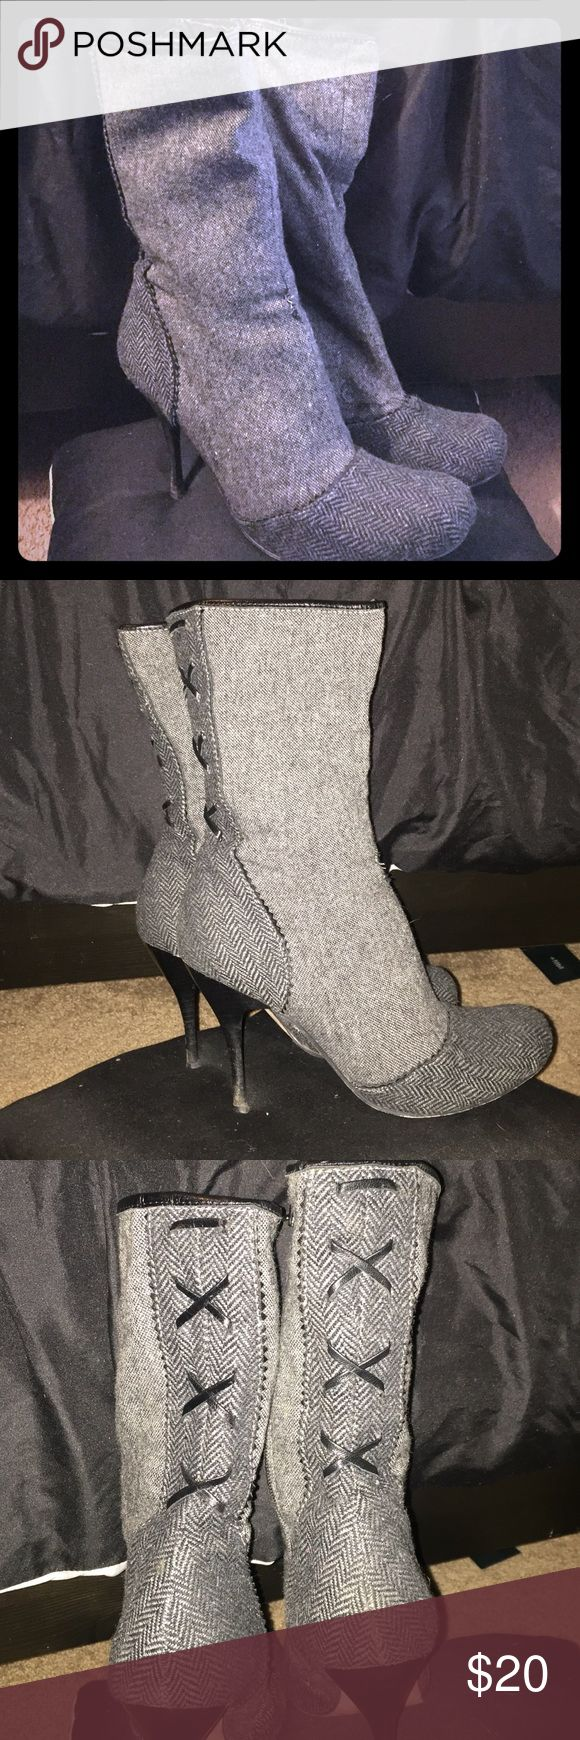 Charles by Charles David boots Super cute boots by Charles David. Used. Charles David Shoes Heeled Boots